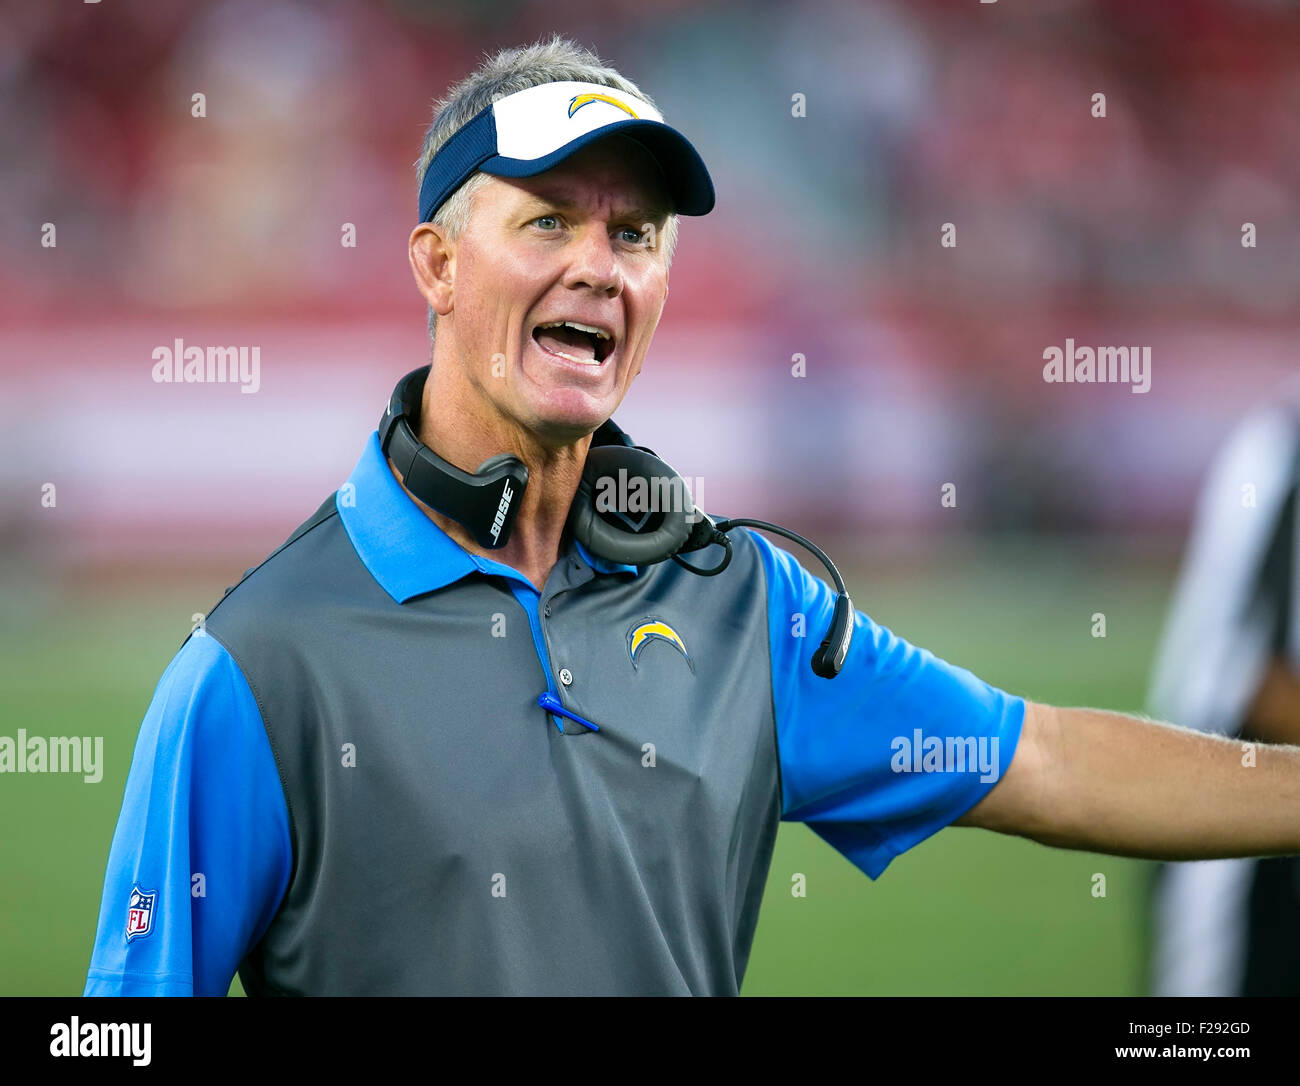 San Diego Chargers Coaches: Mike Mccoy Stock Photos & Mike Mccoy Stock Images